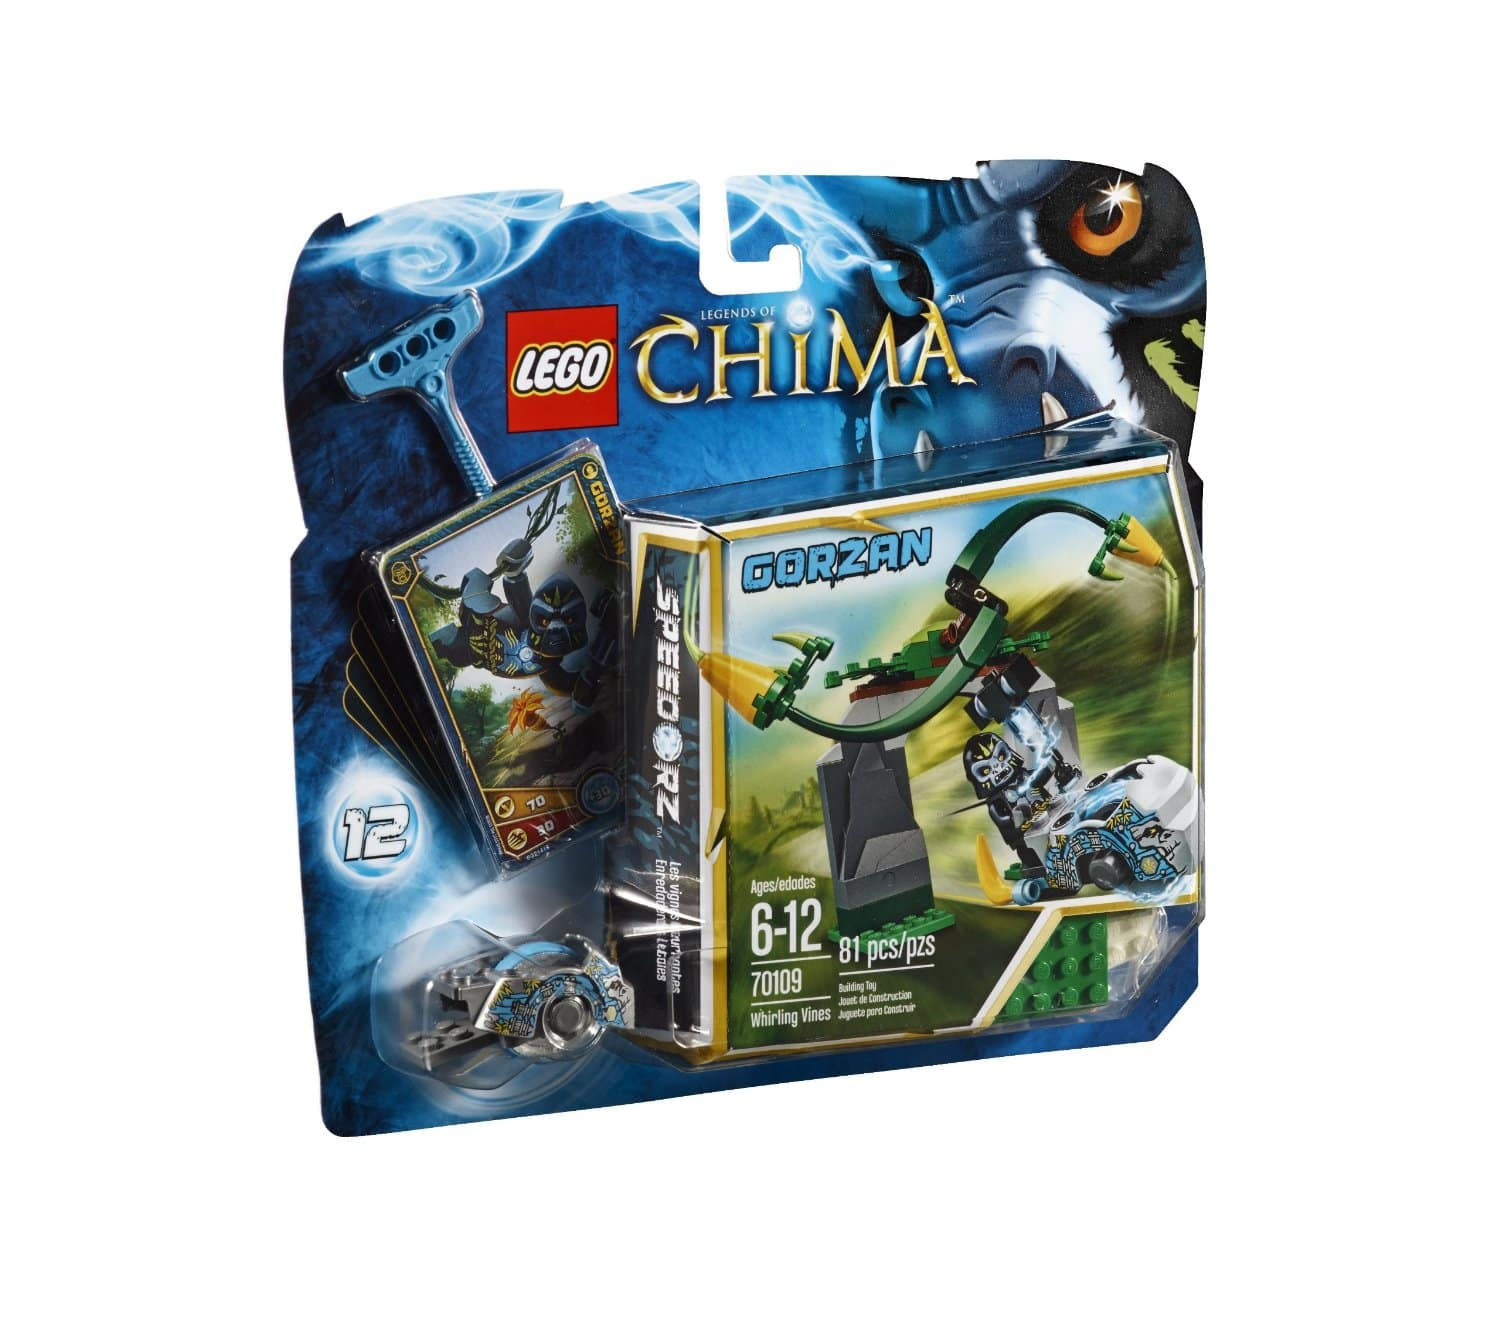 LEGO Chima Building Sets: Tower Target $6, Whirling Vines  $5